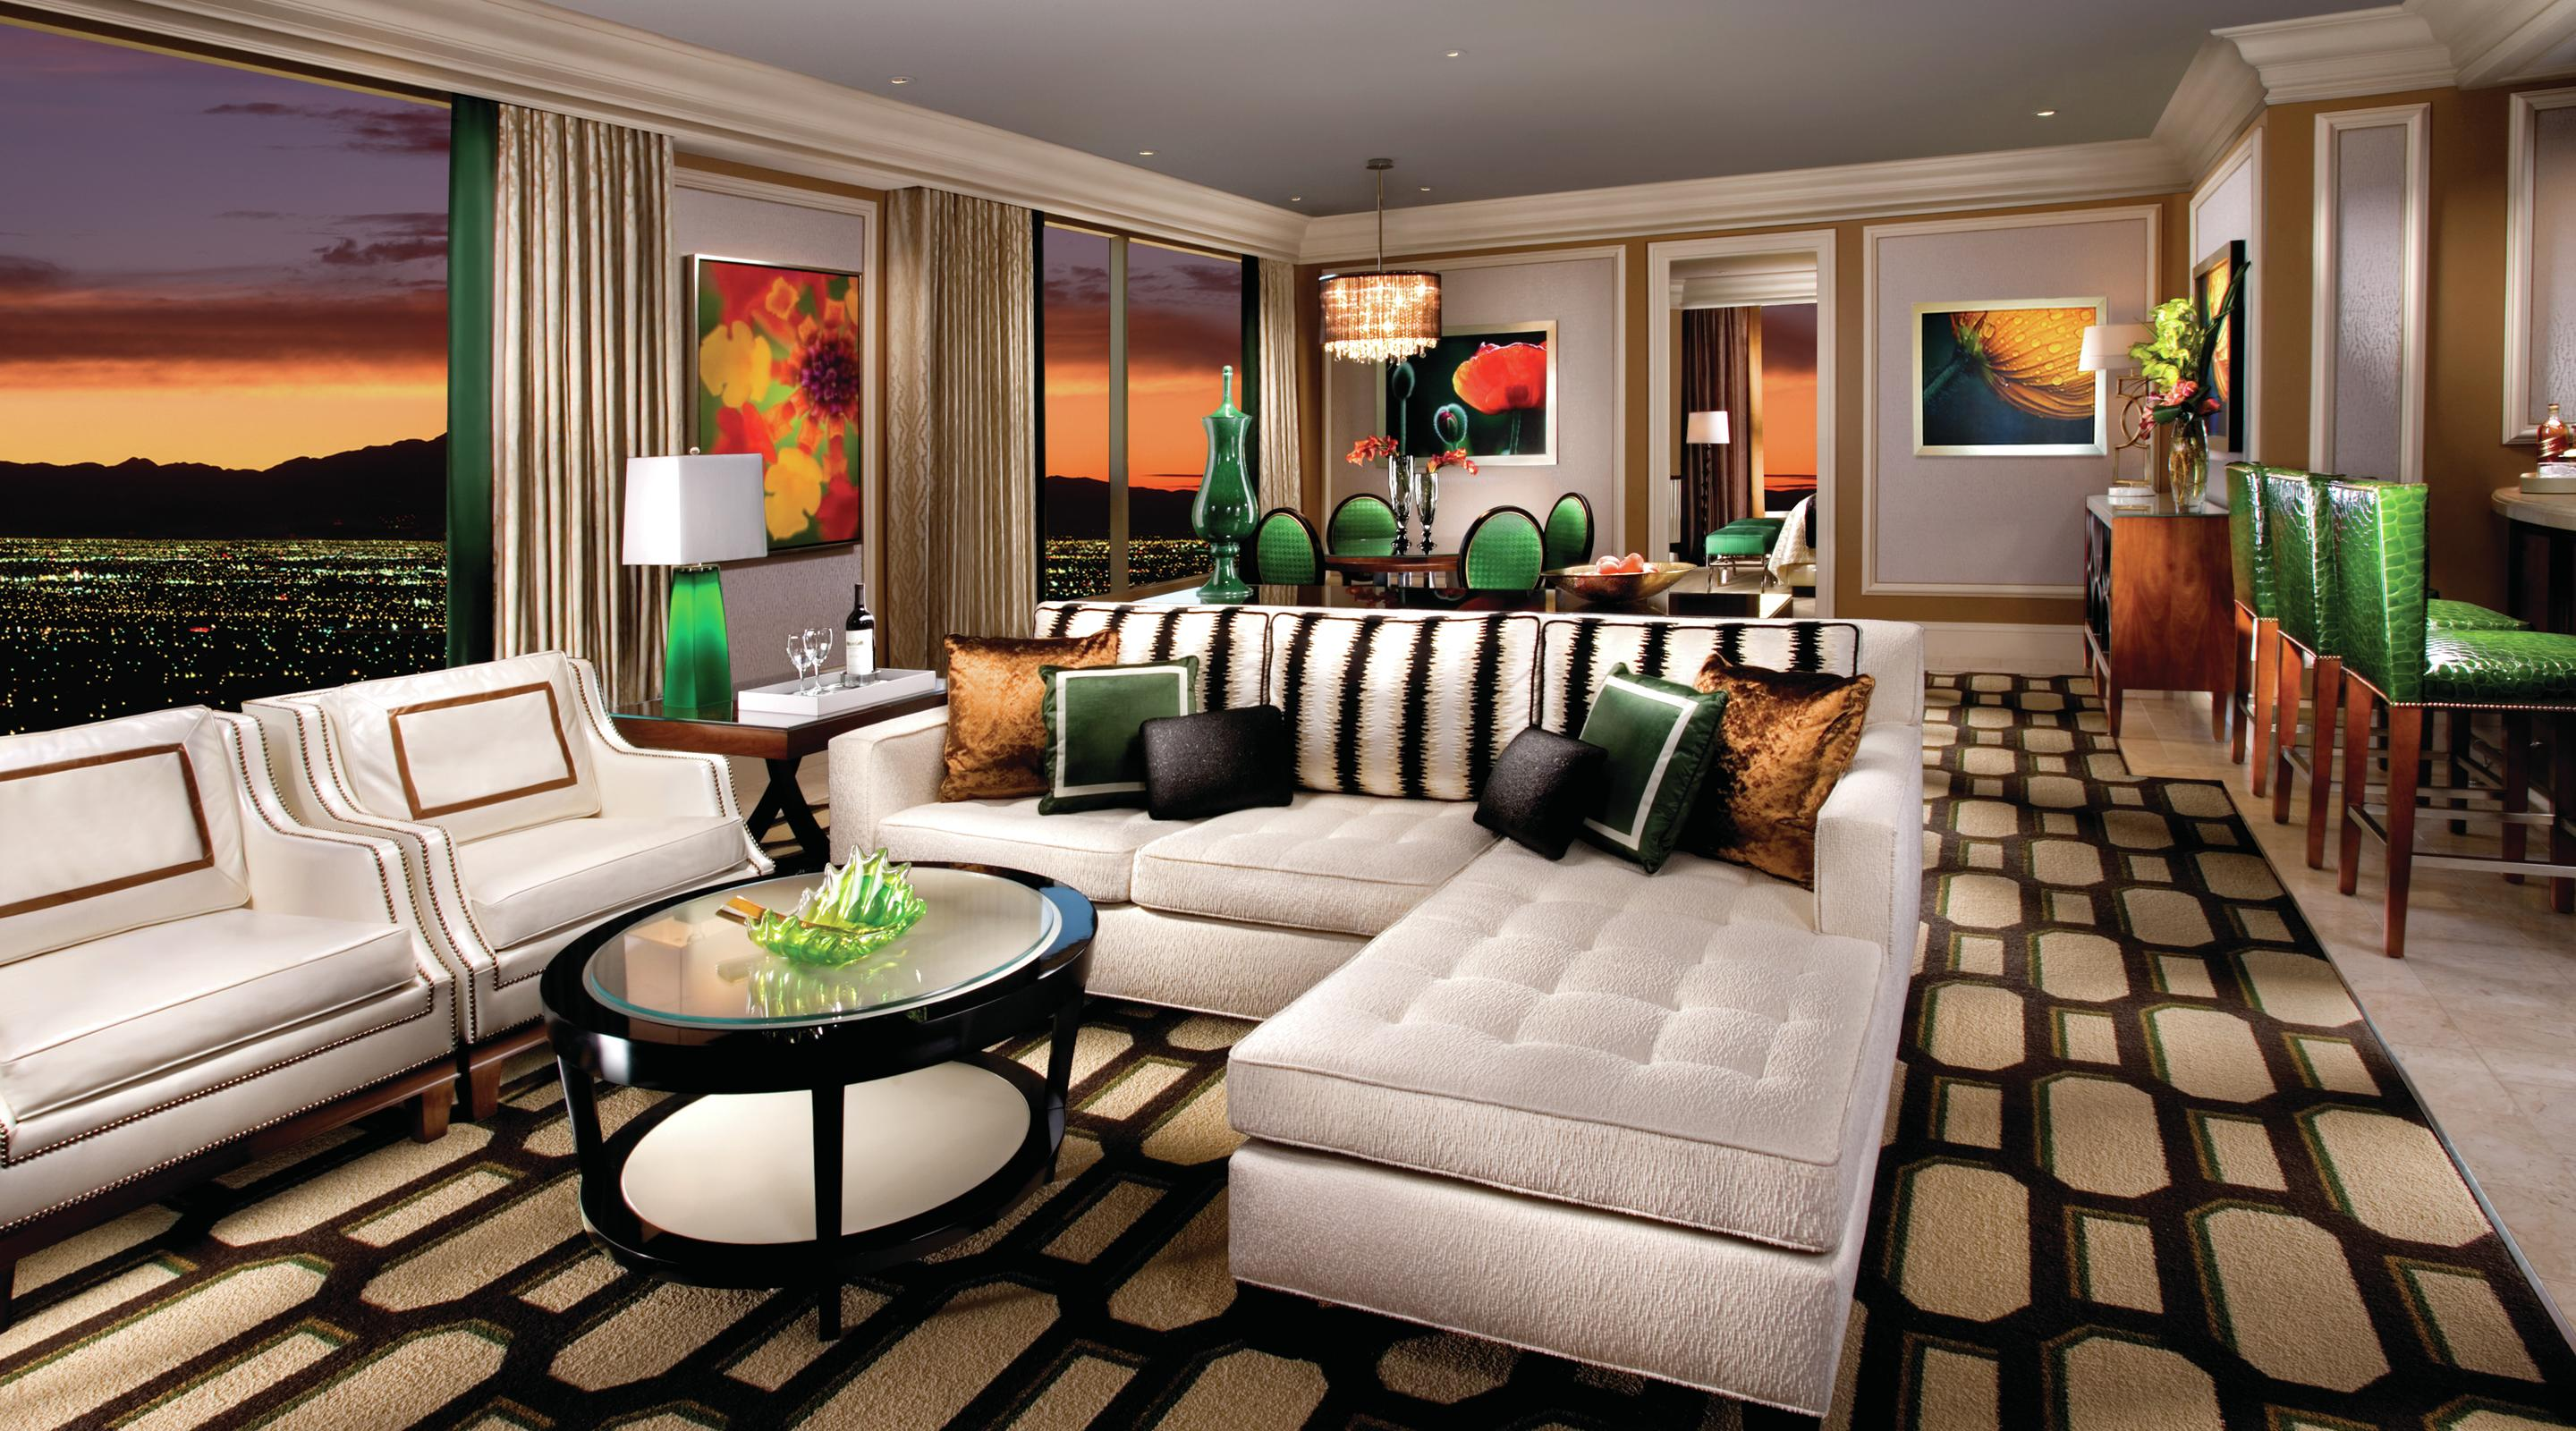 Mgm Grand 2 Bedroom Suite Bellagio 2 Bedroom Suite Pictures Www Indiepedia Org